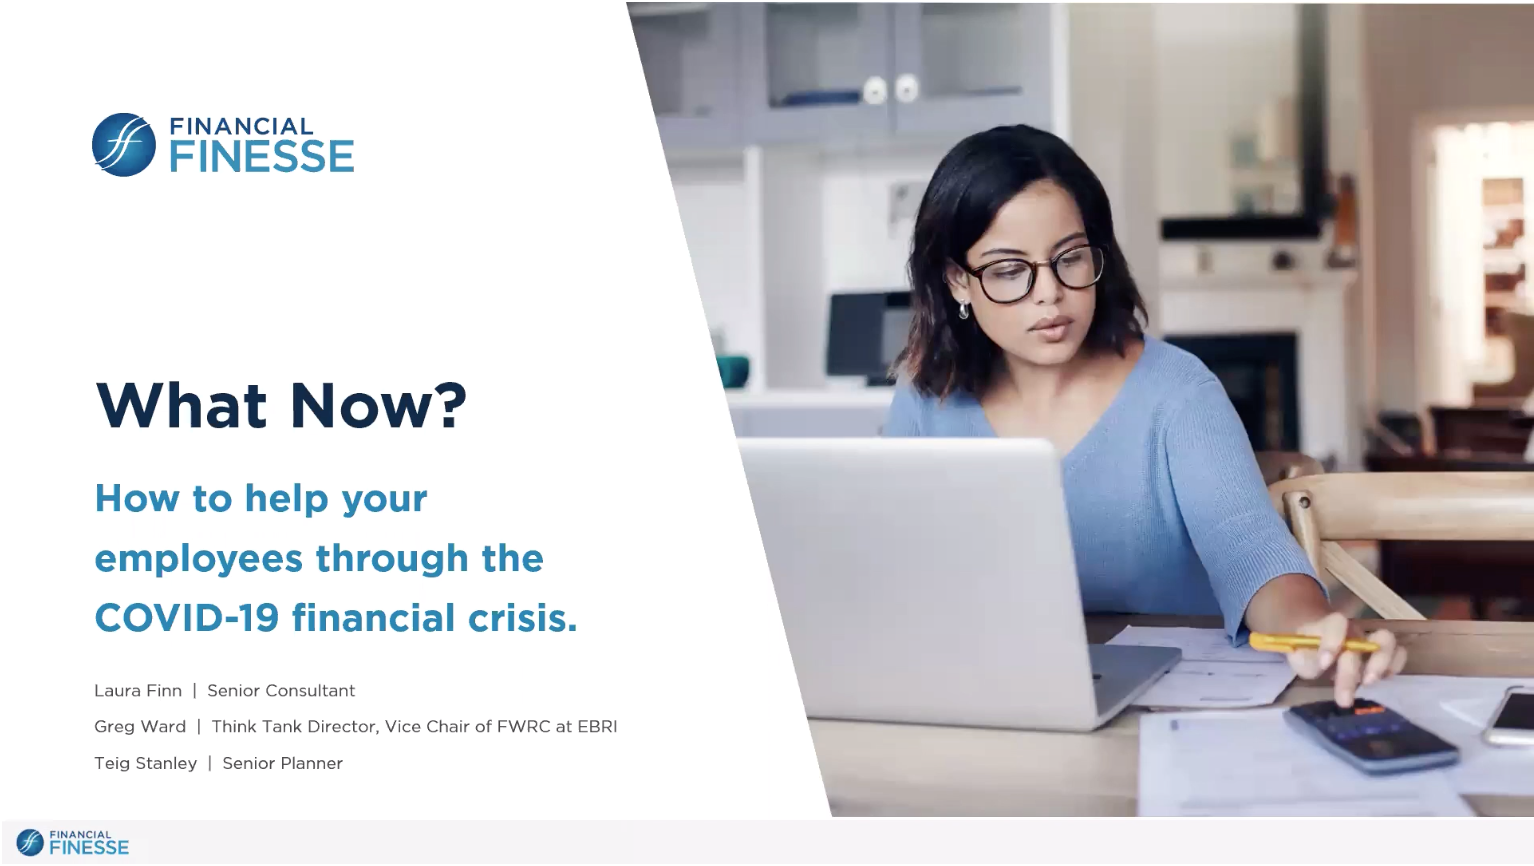 VIDEO: How to Help Your Employees Through the COVID-19 Financial Crisis